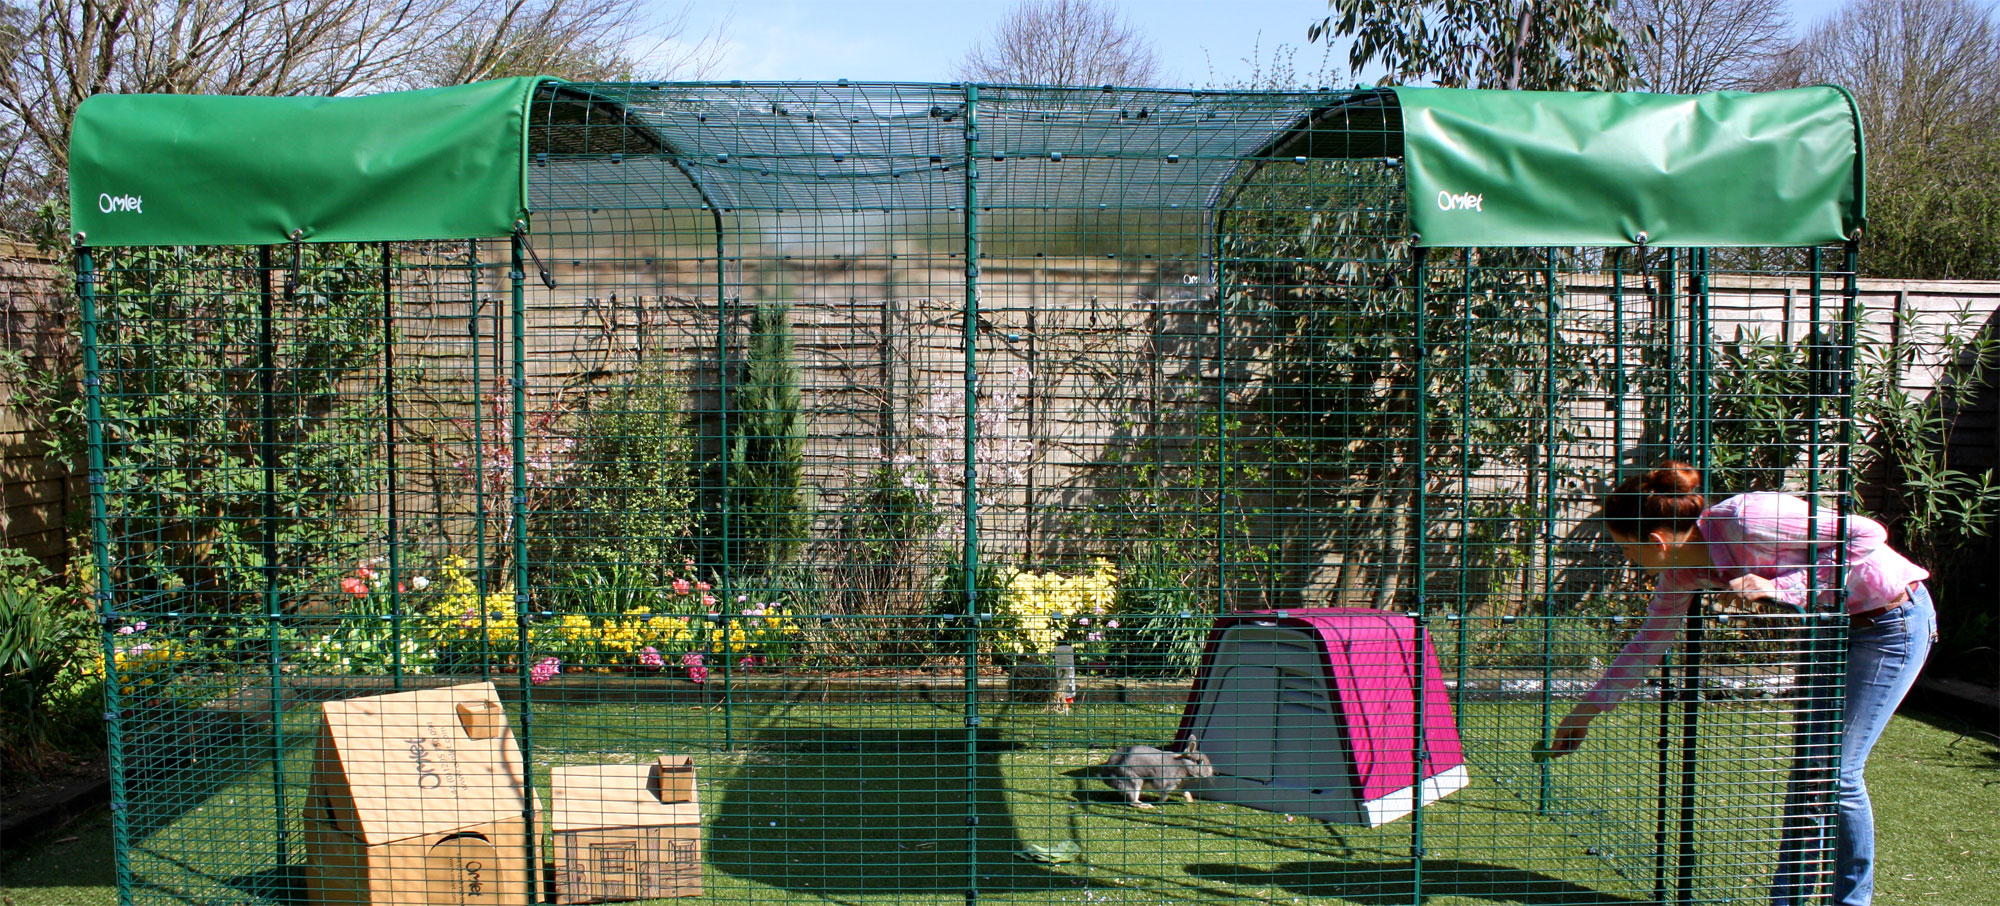 outdoor rabbit run large outdoor rabbit enclosure